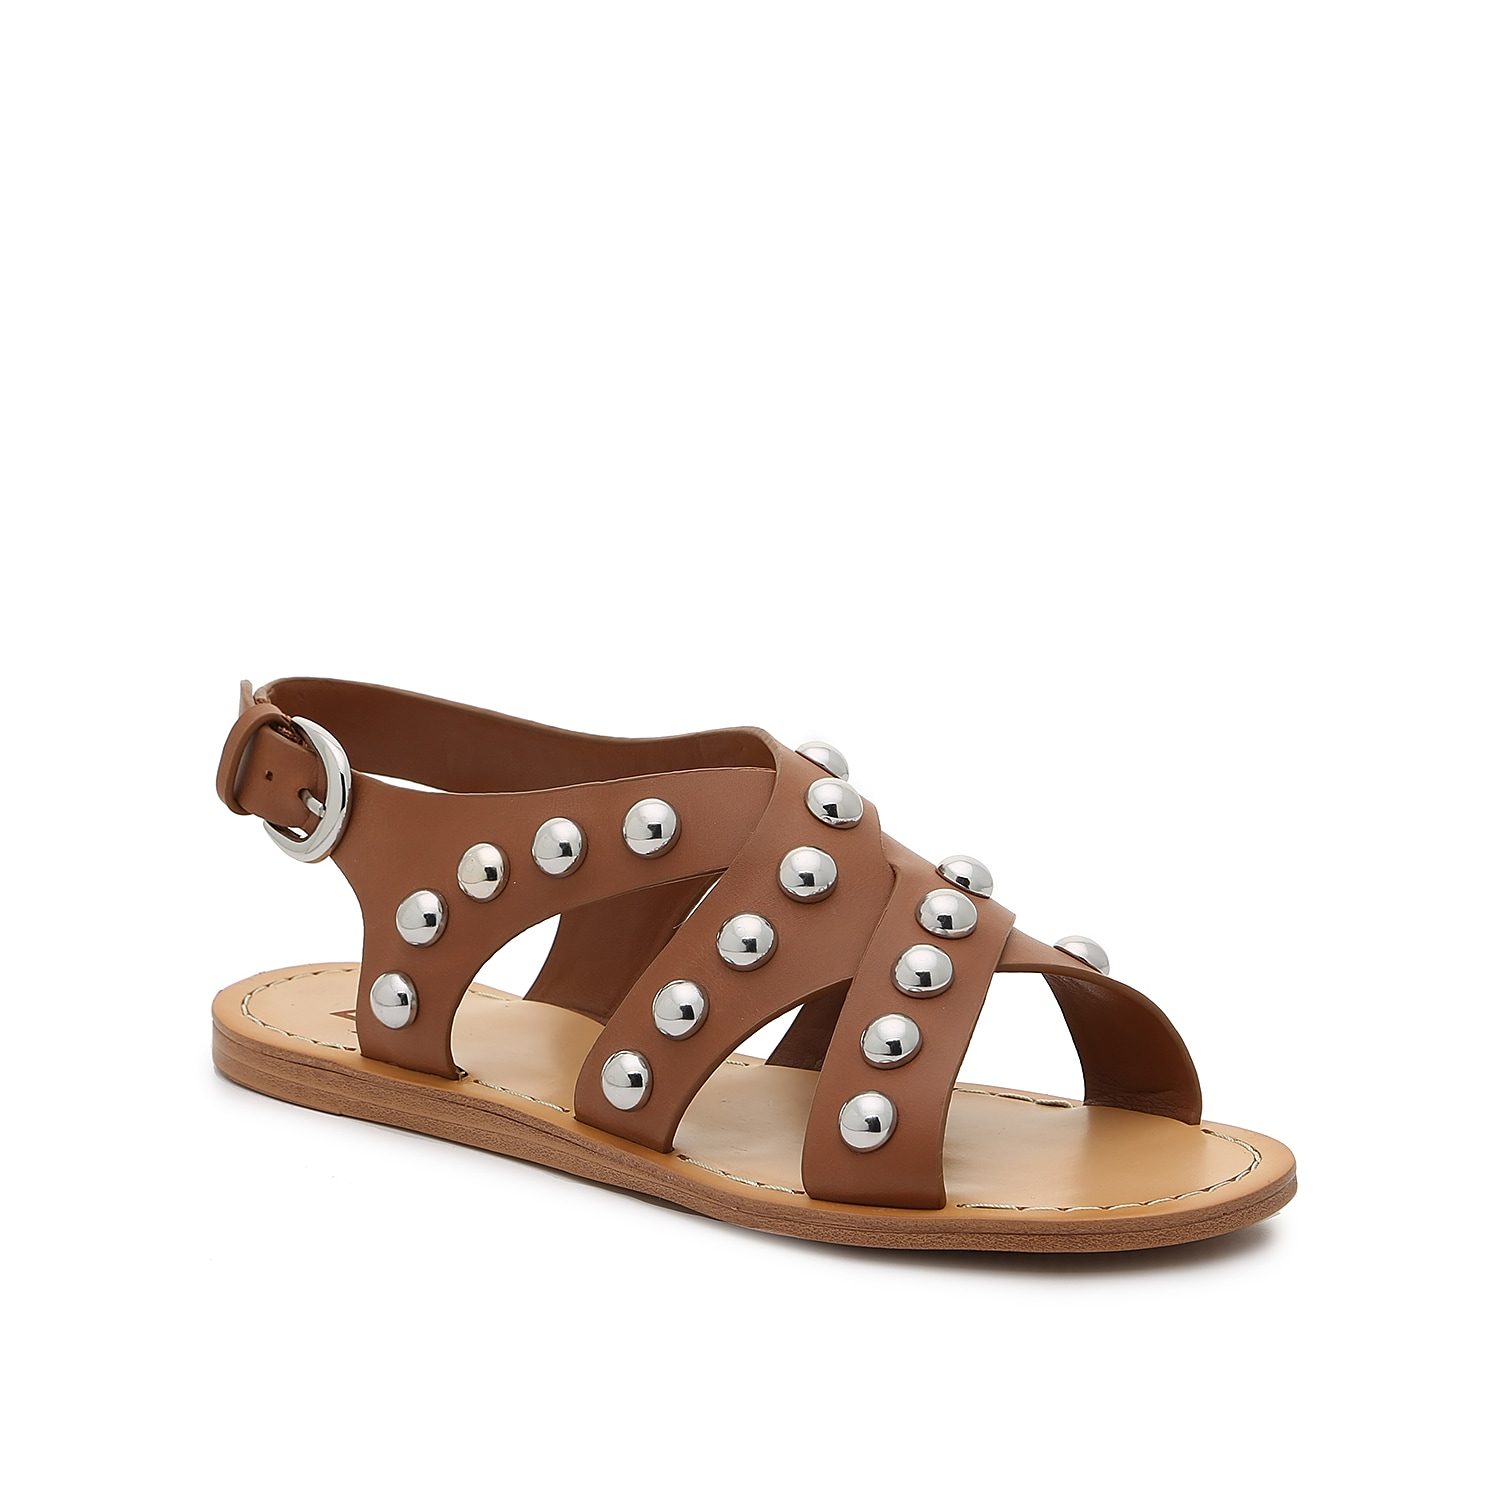 Interwoven straps and metallic ornaments define the Prancer flats from Marc Fisher Ltd. An ankle cuff holds this sandal in place for an easy-going fit.